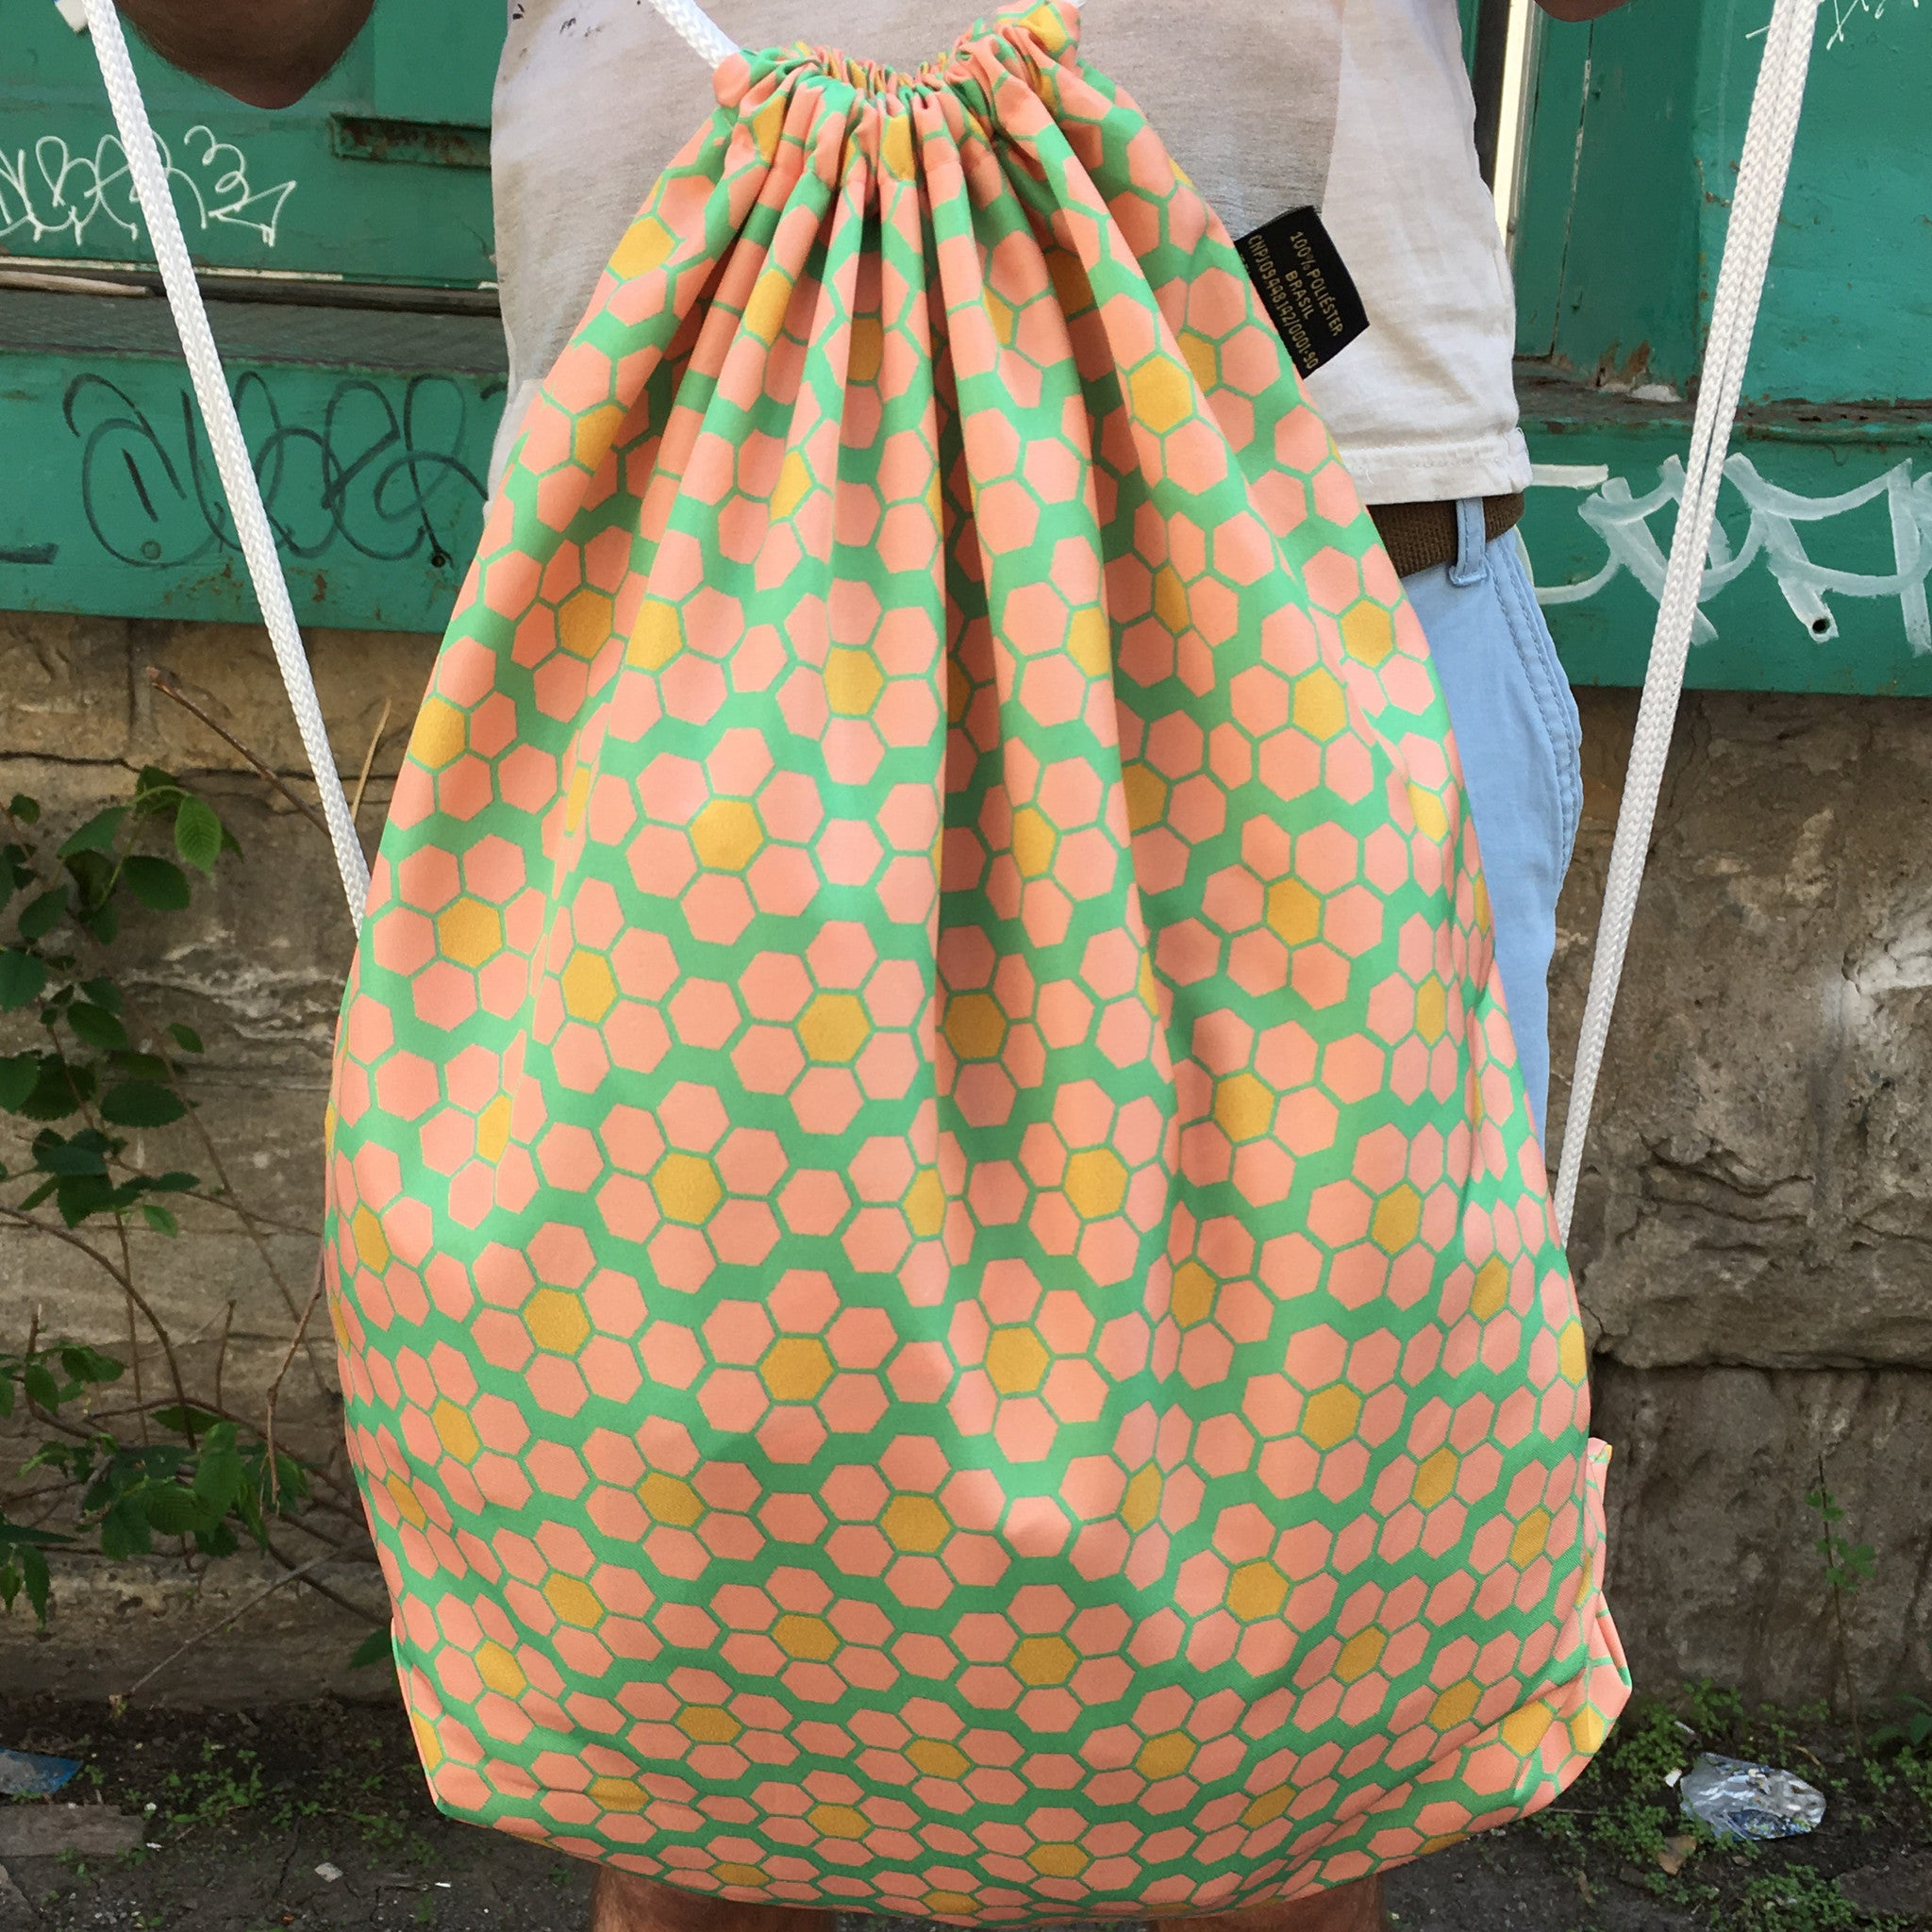 Drawstring Bag | Hive Flower by Monsieur Clown - Monsieur Clown - 1